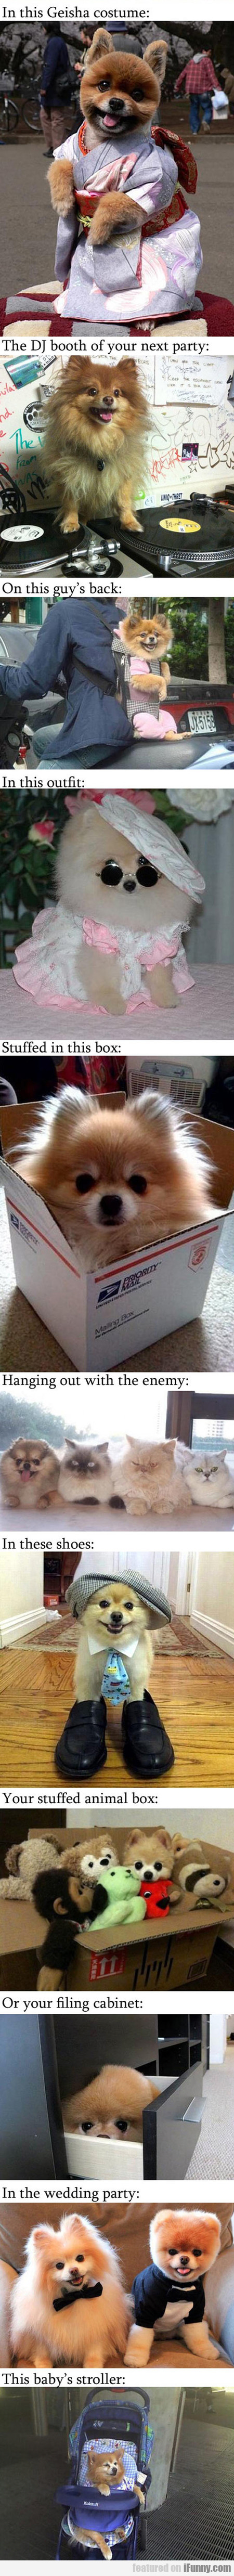 Pomeranians, What Do You Think You Are Doing?